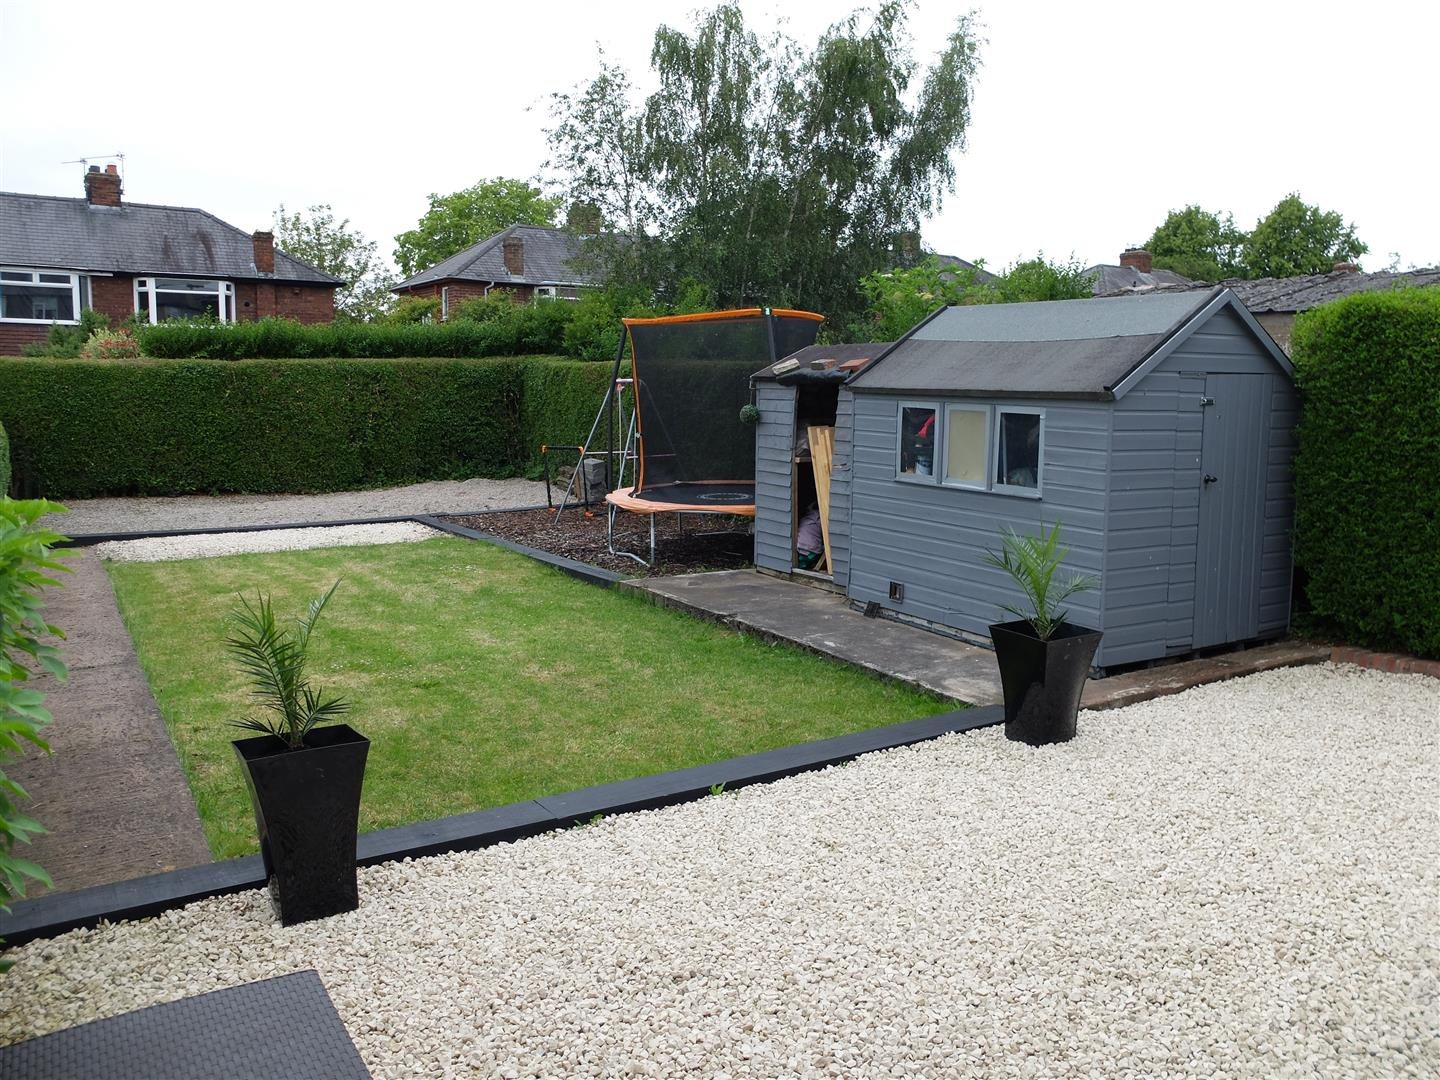 3 Bedrooms House - Semi-Detached For Sale 148 Blackwell Road Carlisle